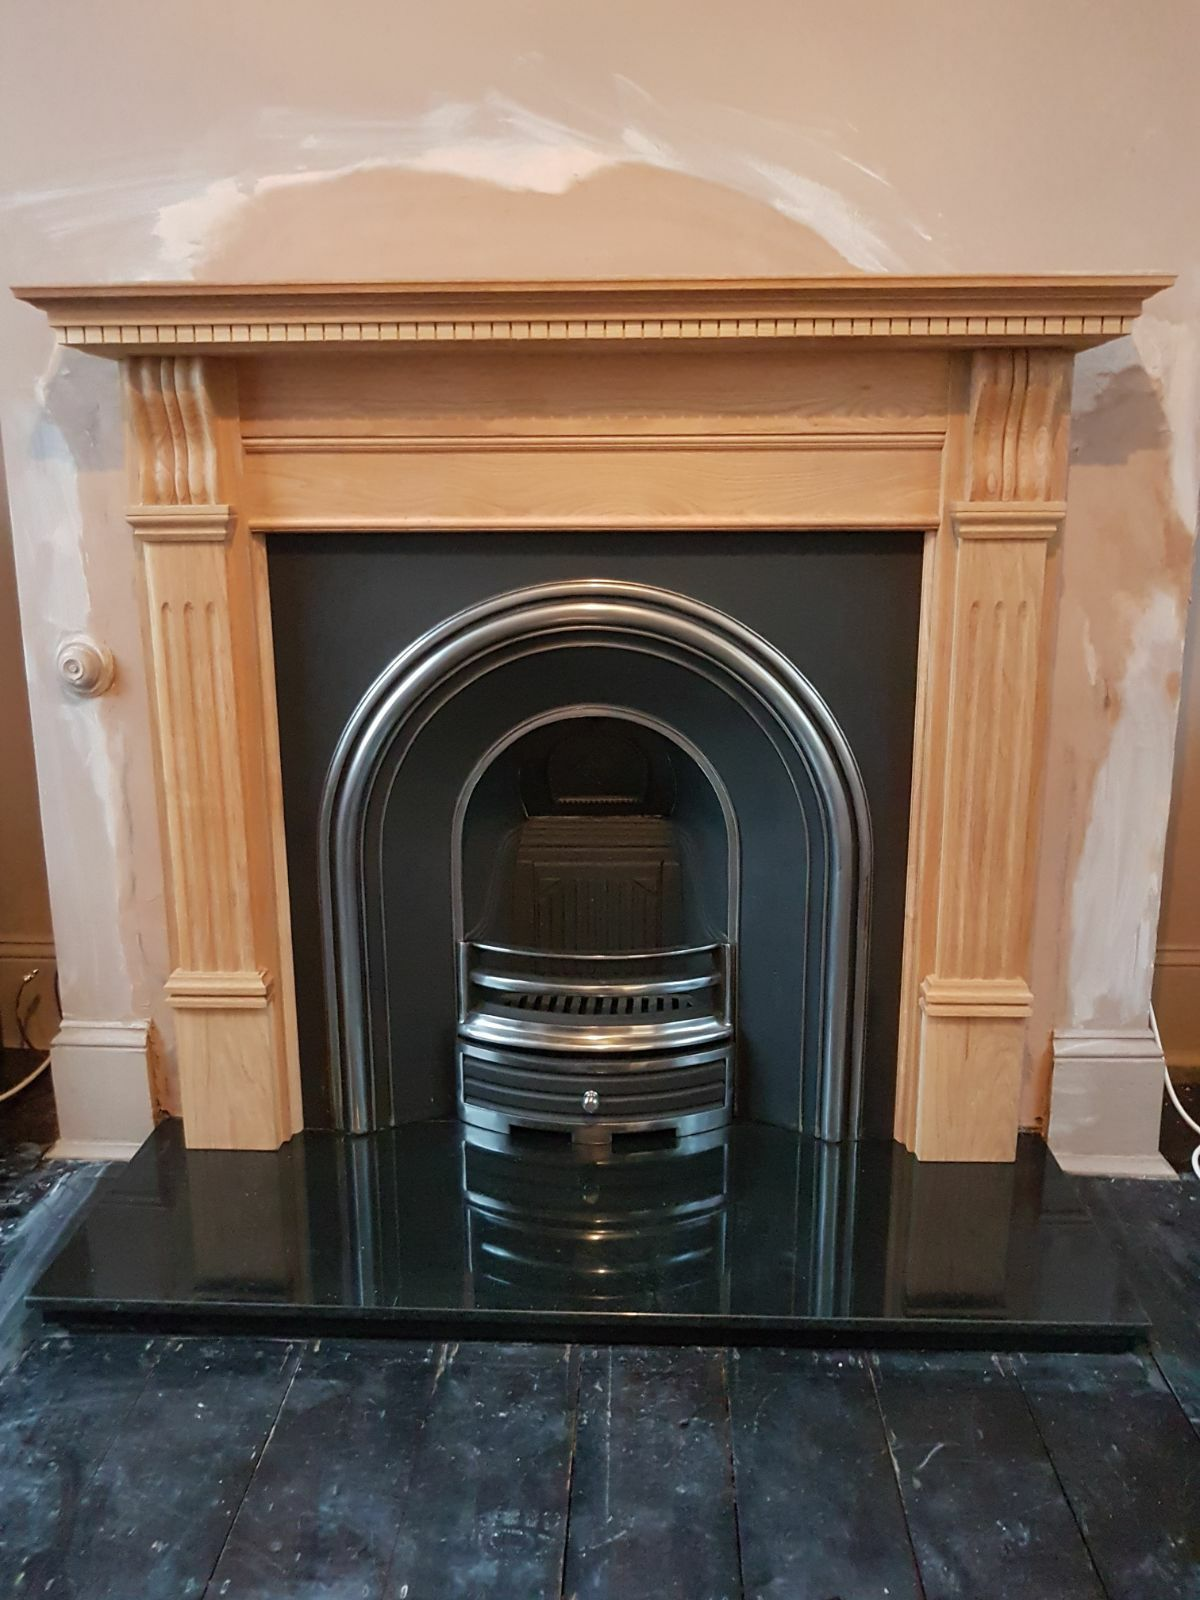 jubilee black cast iron with a large corbel surround sitting on a